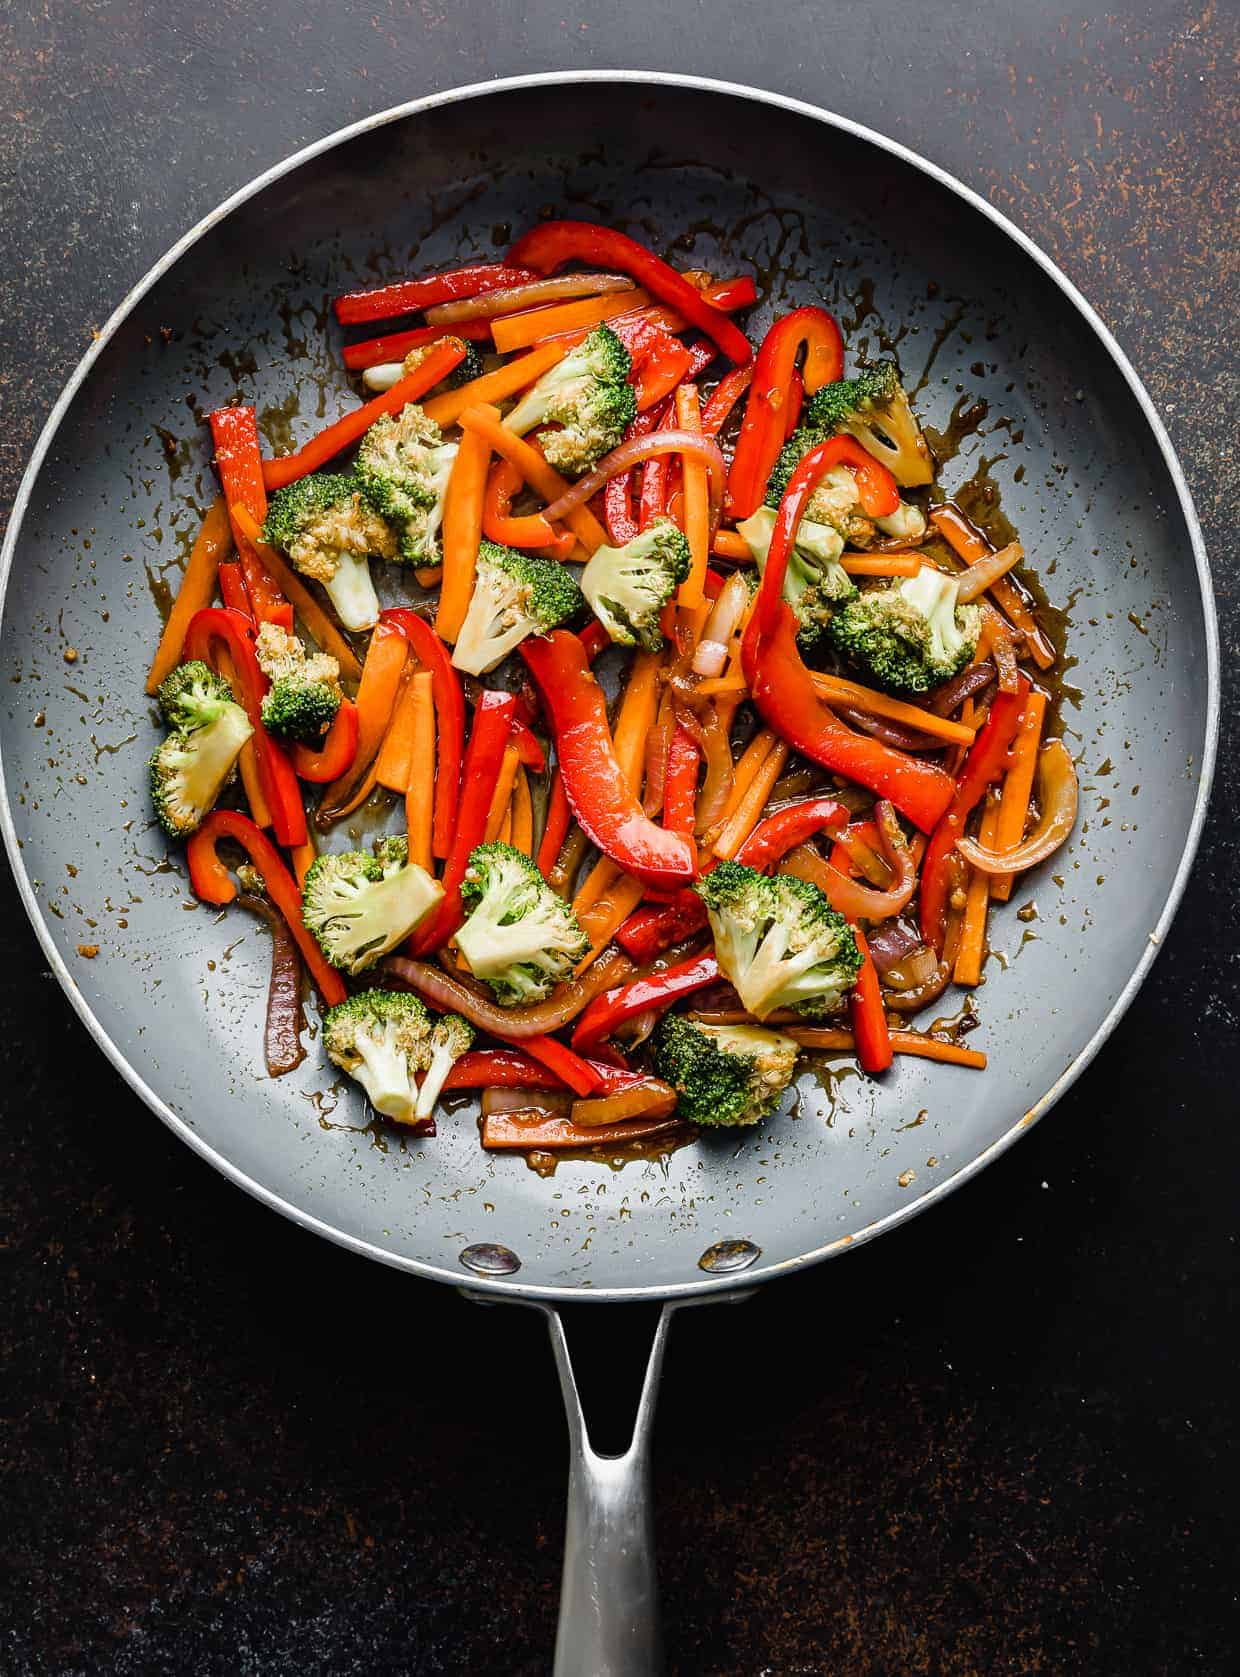 Cooked red peppers, broccoli, and carrots in a skillet.